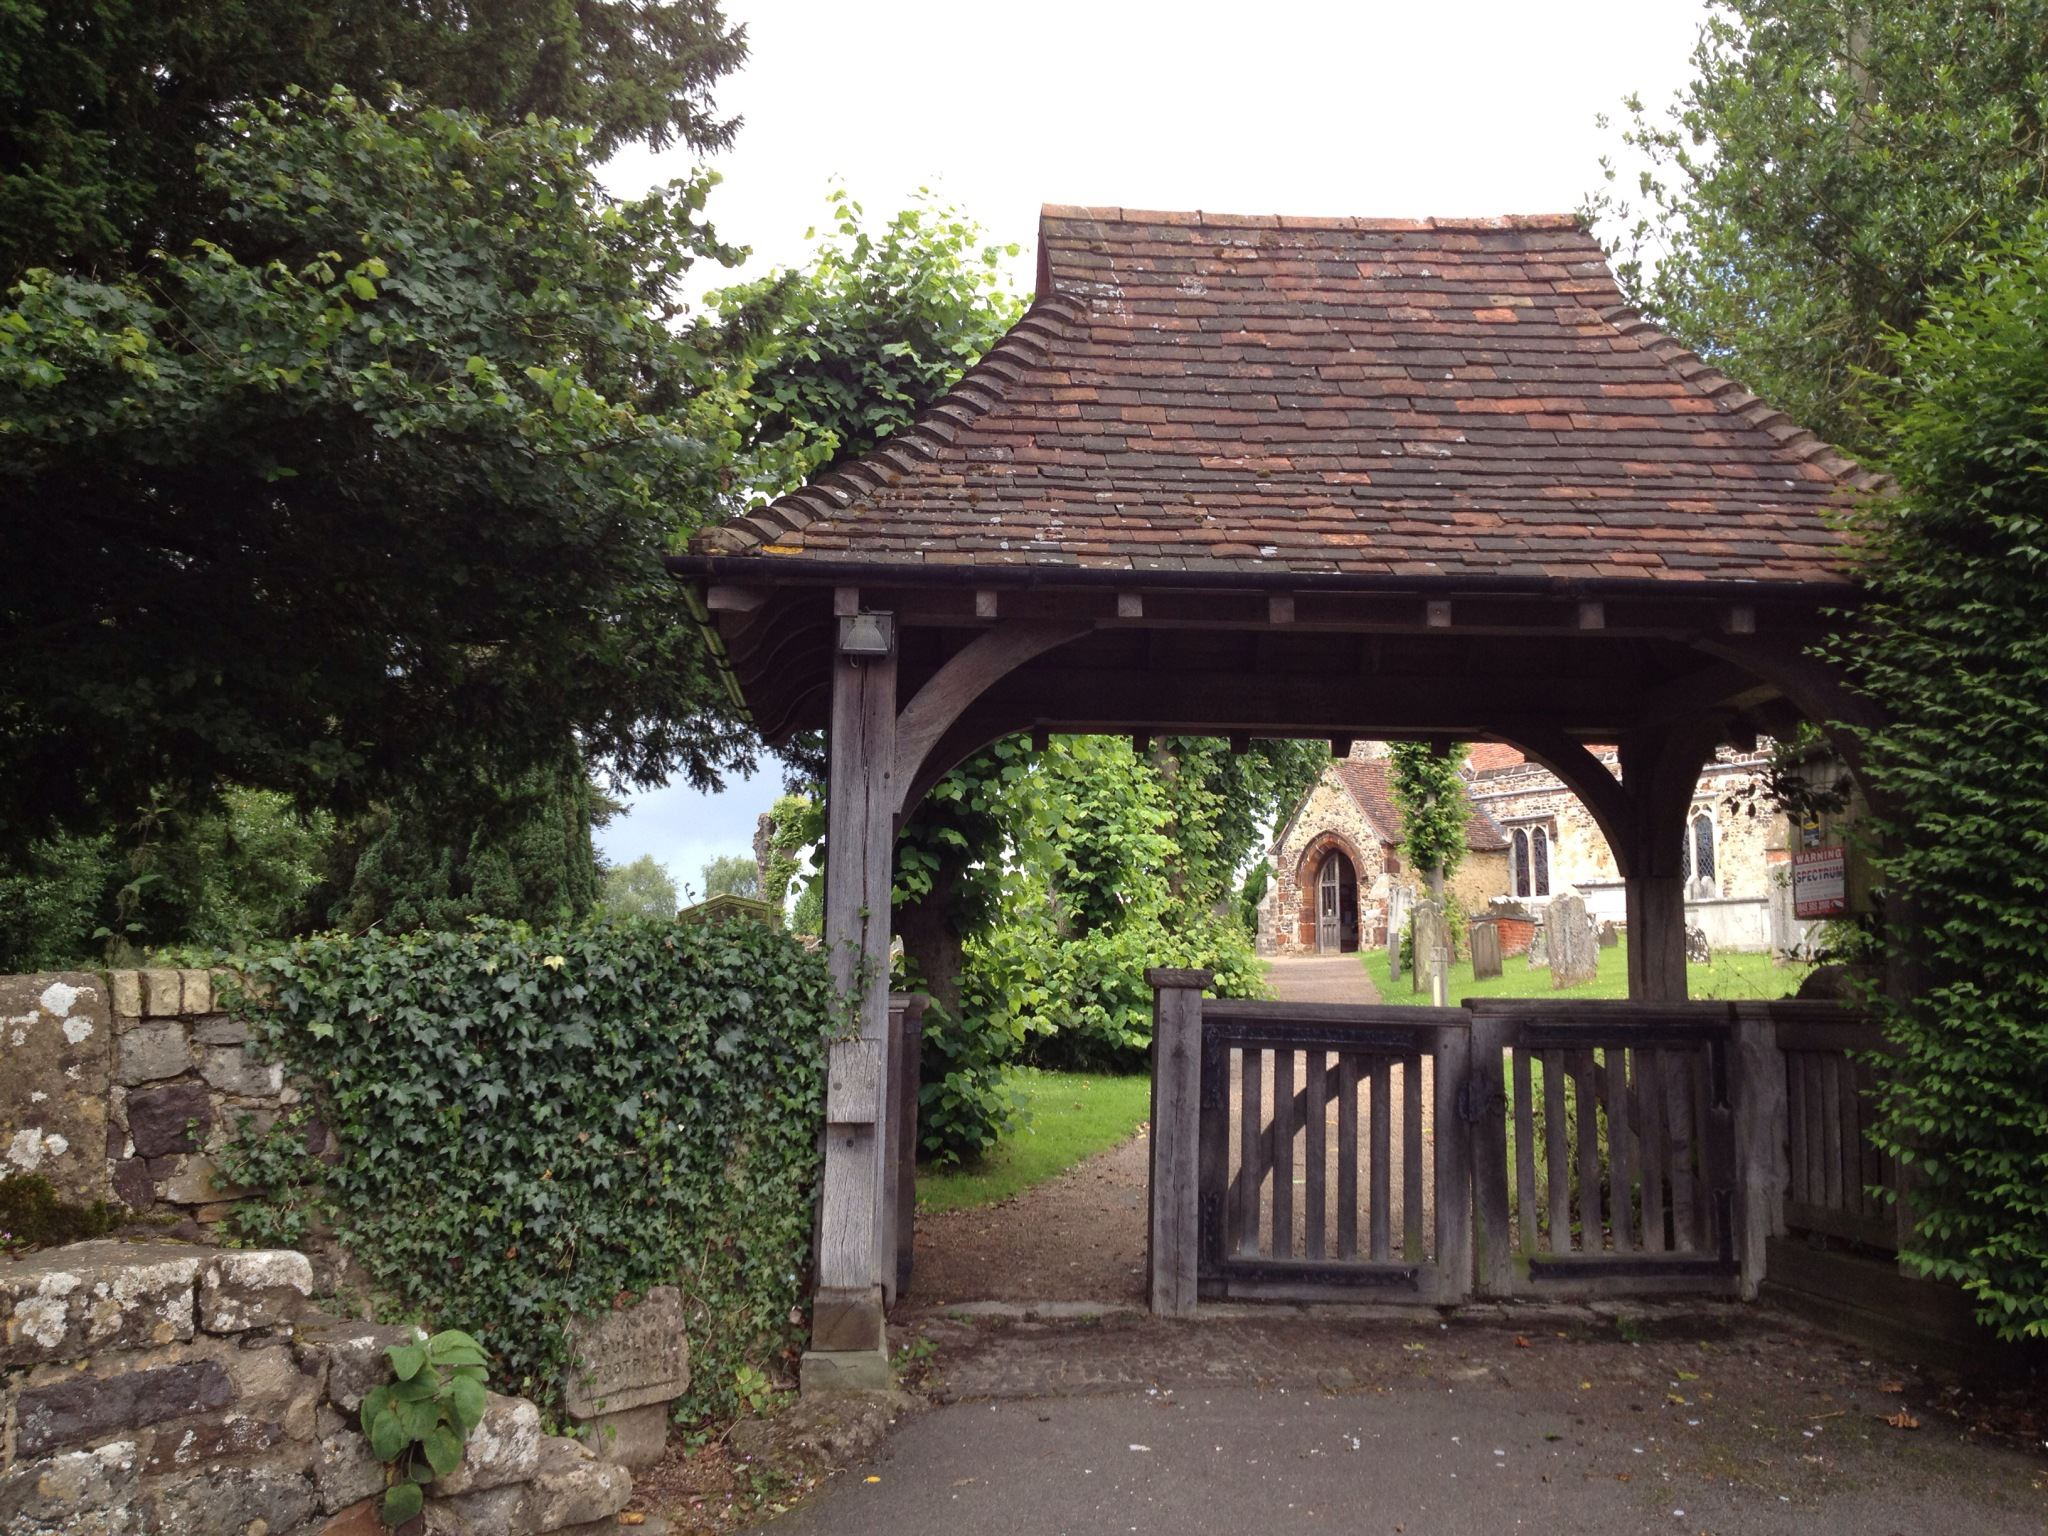 St Peters Church, Ightham - Lych gate